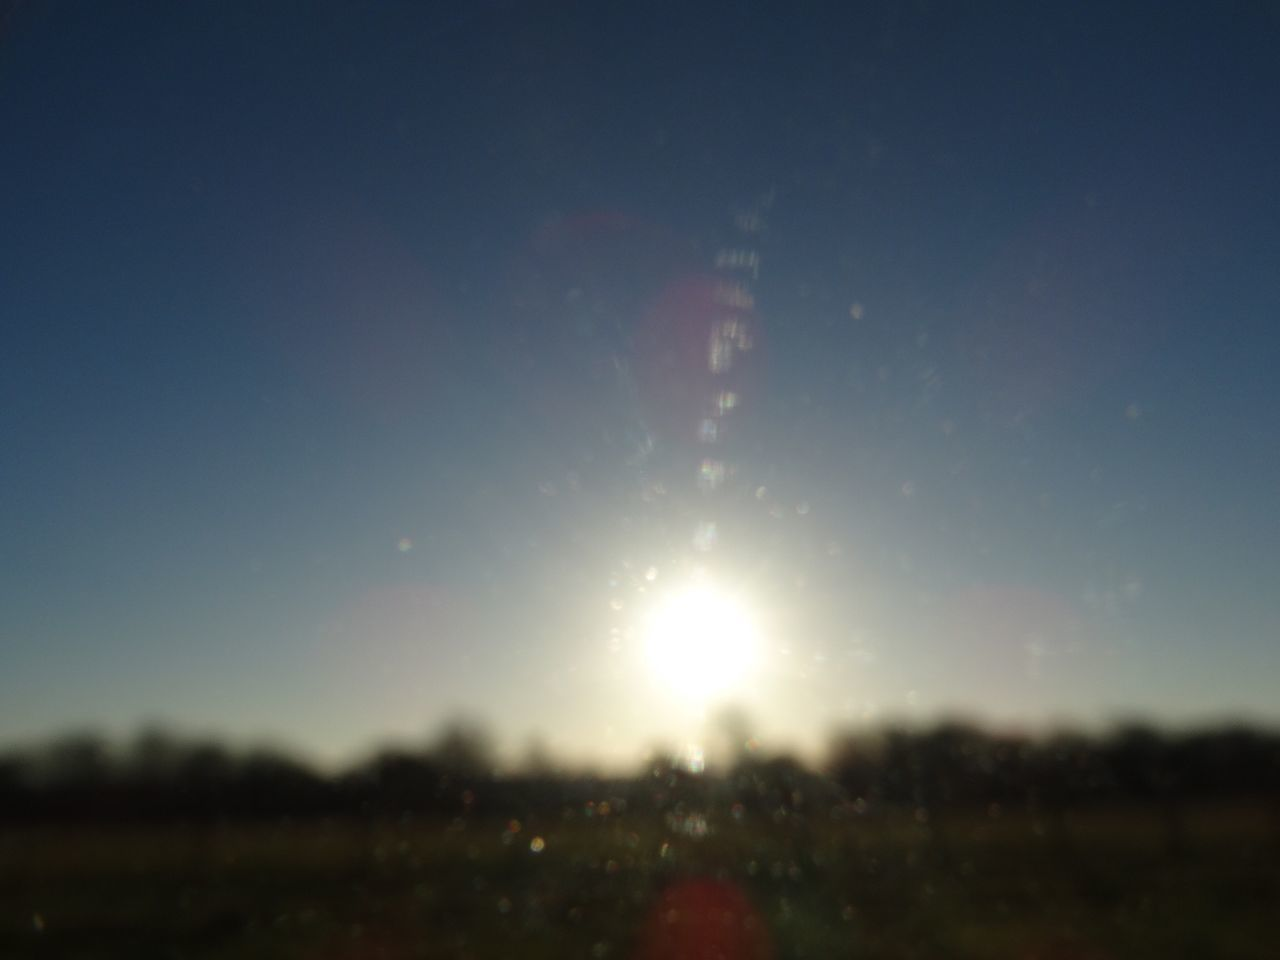 Sun glare. Nature Sun Sunlight Tranquility Sky Tranquil Scene Sunbeam Outdoors Beauty In Nature Growth No People Scenics Sunset Day Blur Sun Glare Light Backgrounds Selective Focus Sunrise Sky And Clouds